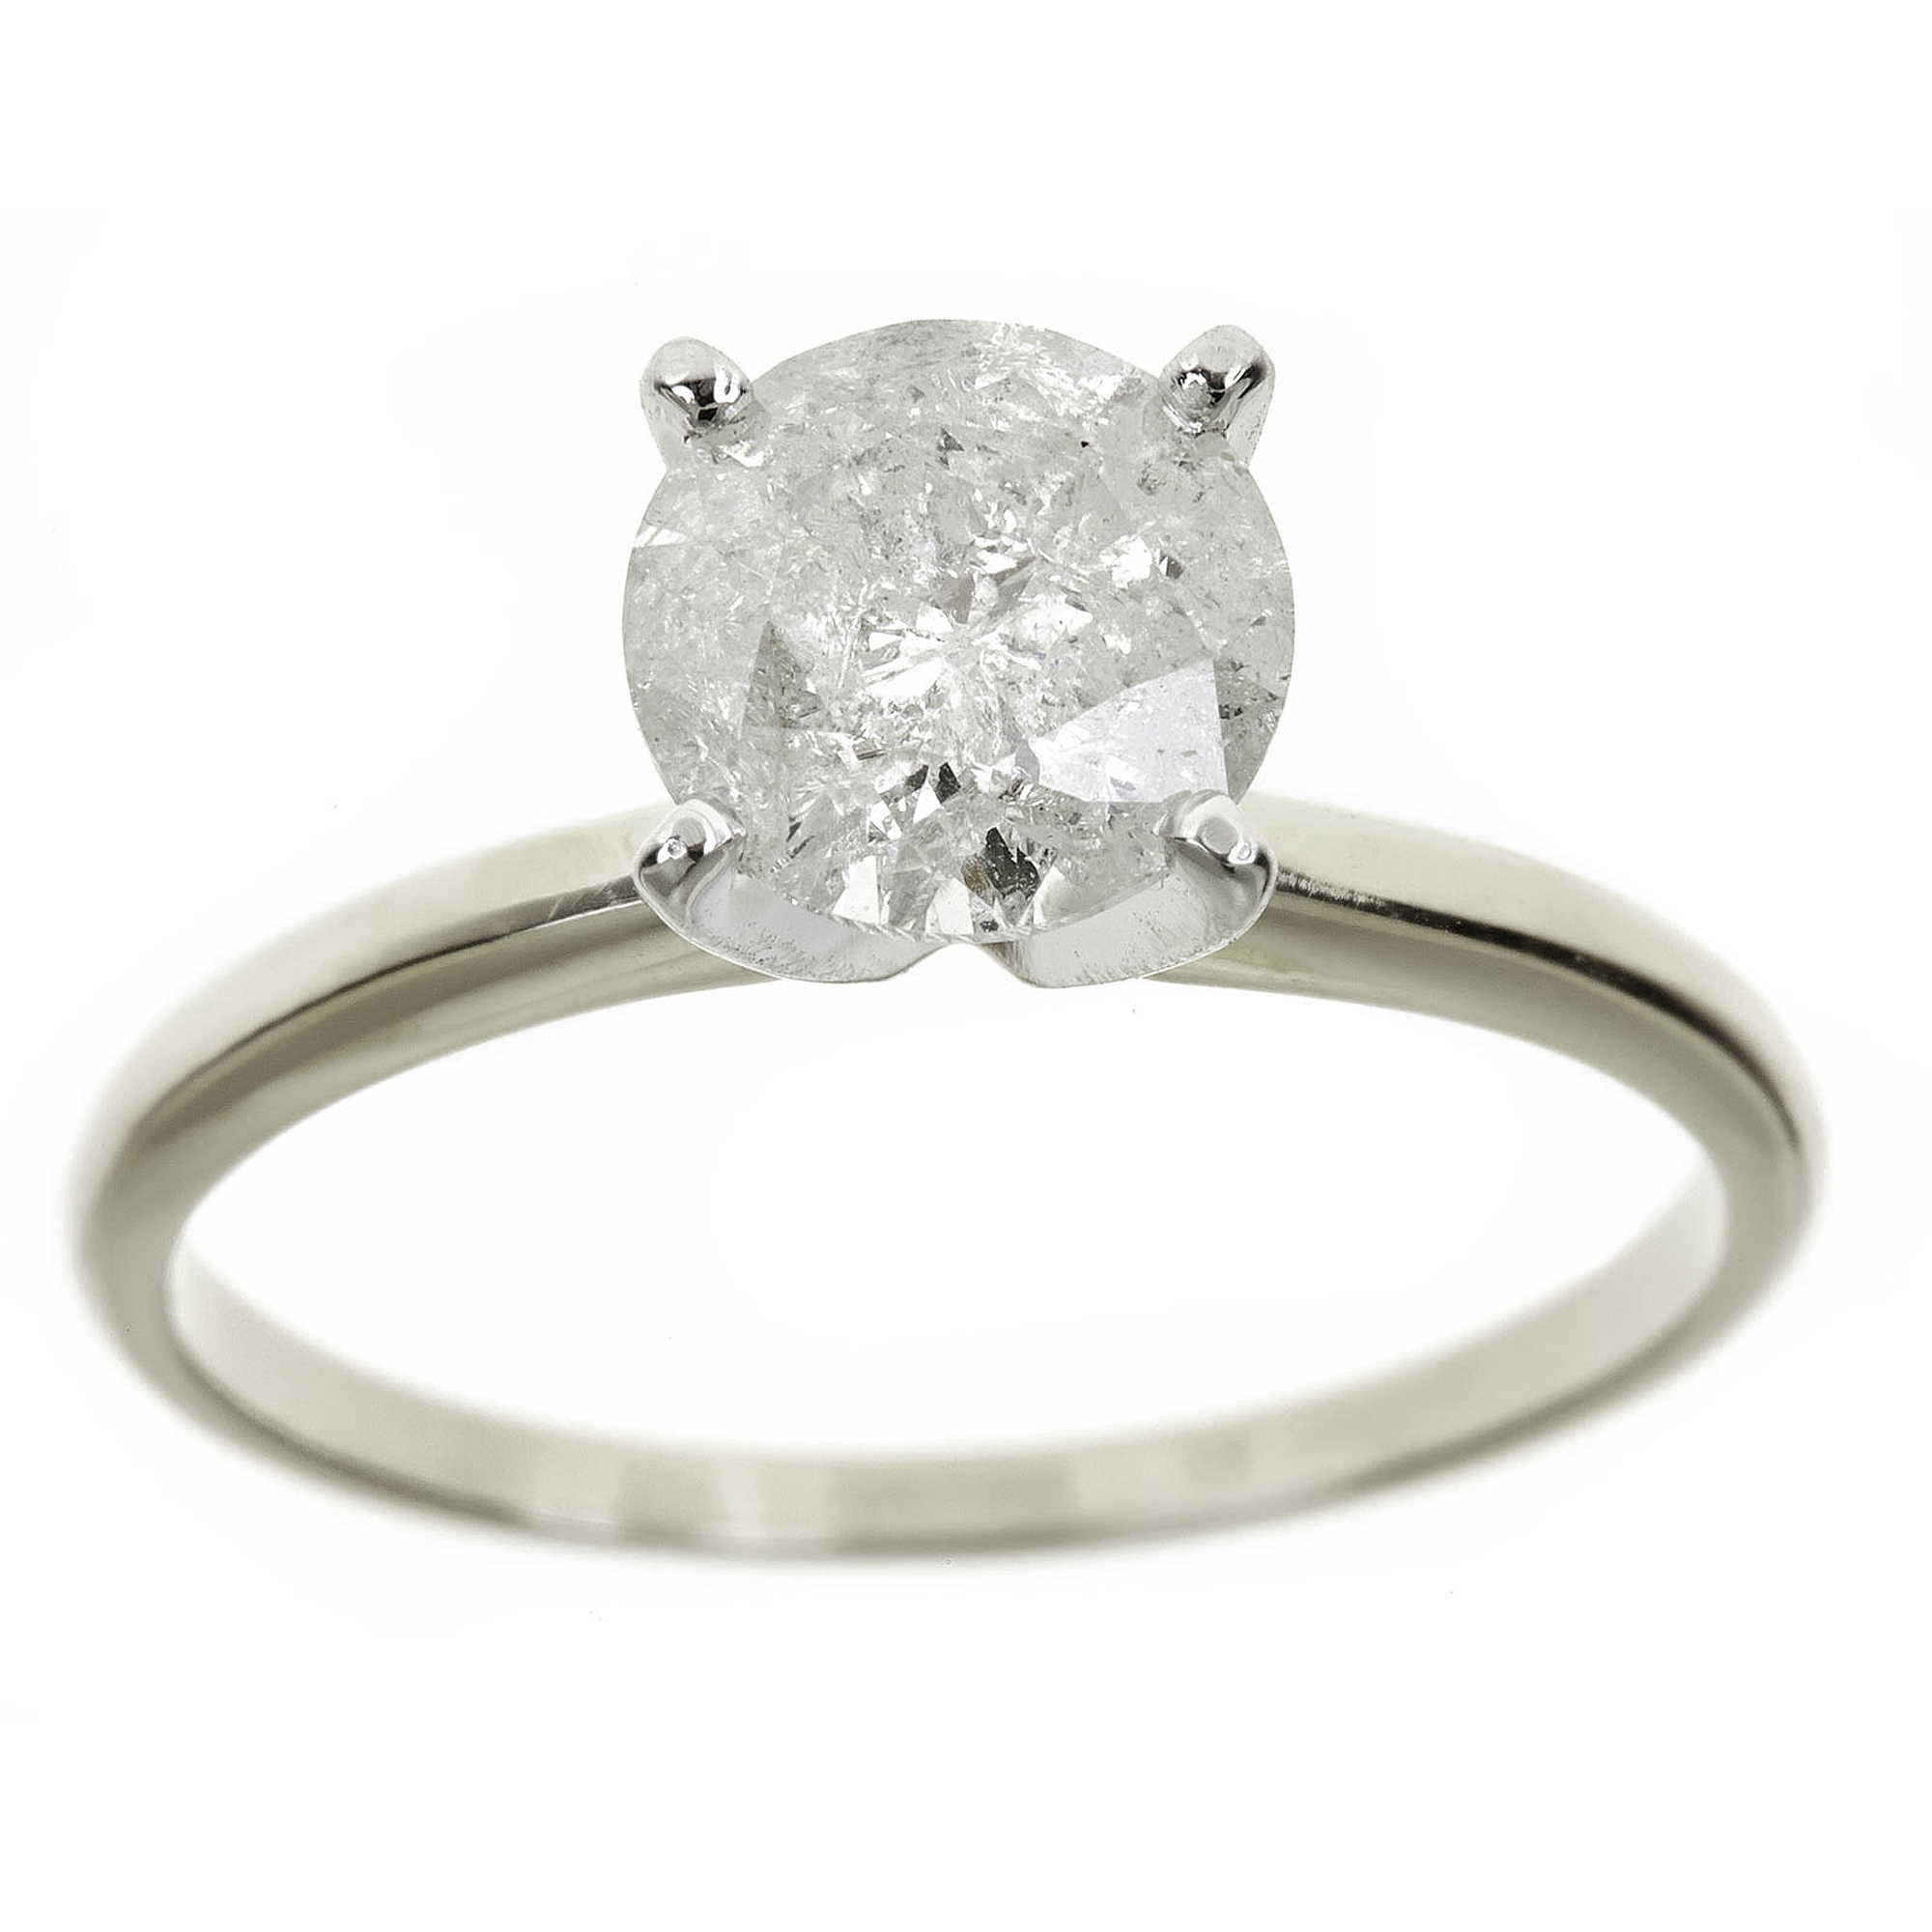 25 to 3 Carats Engagement Rings  Find Your Perfect Ring